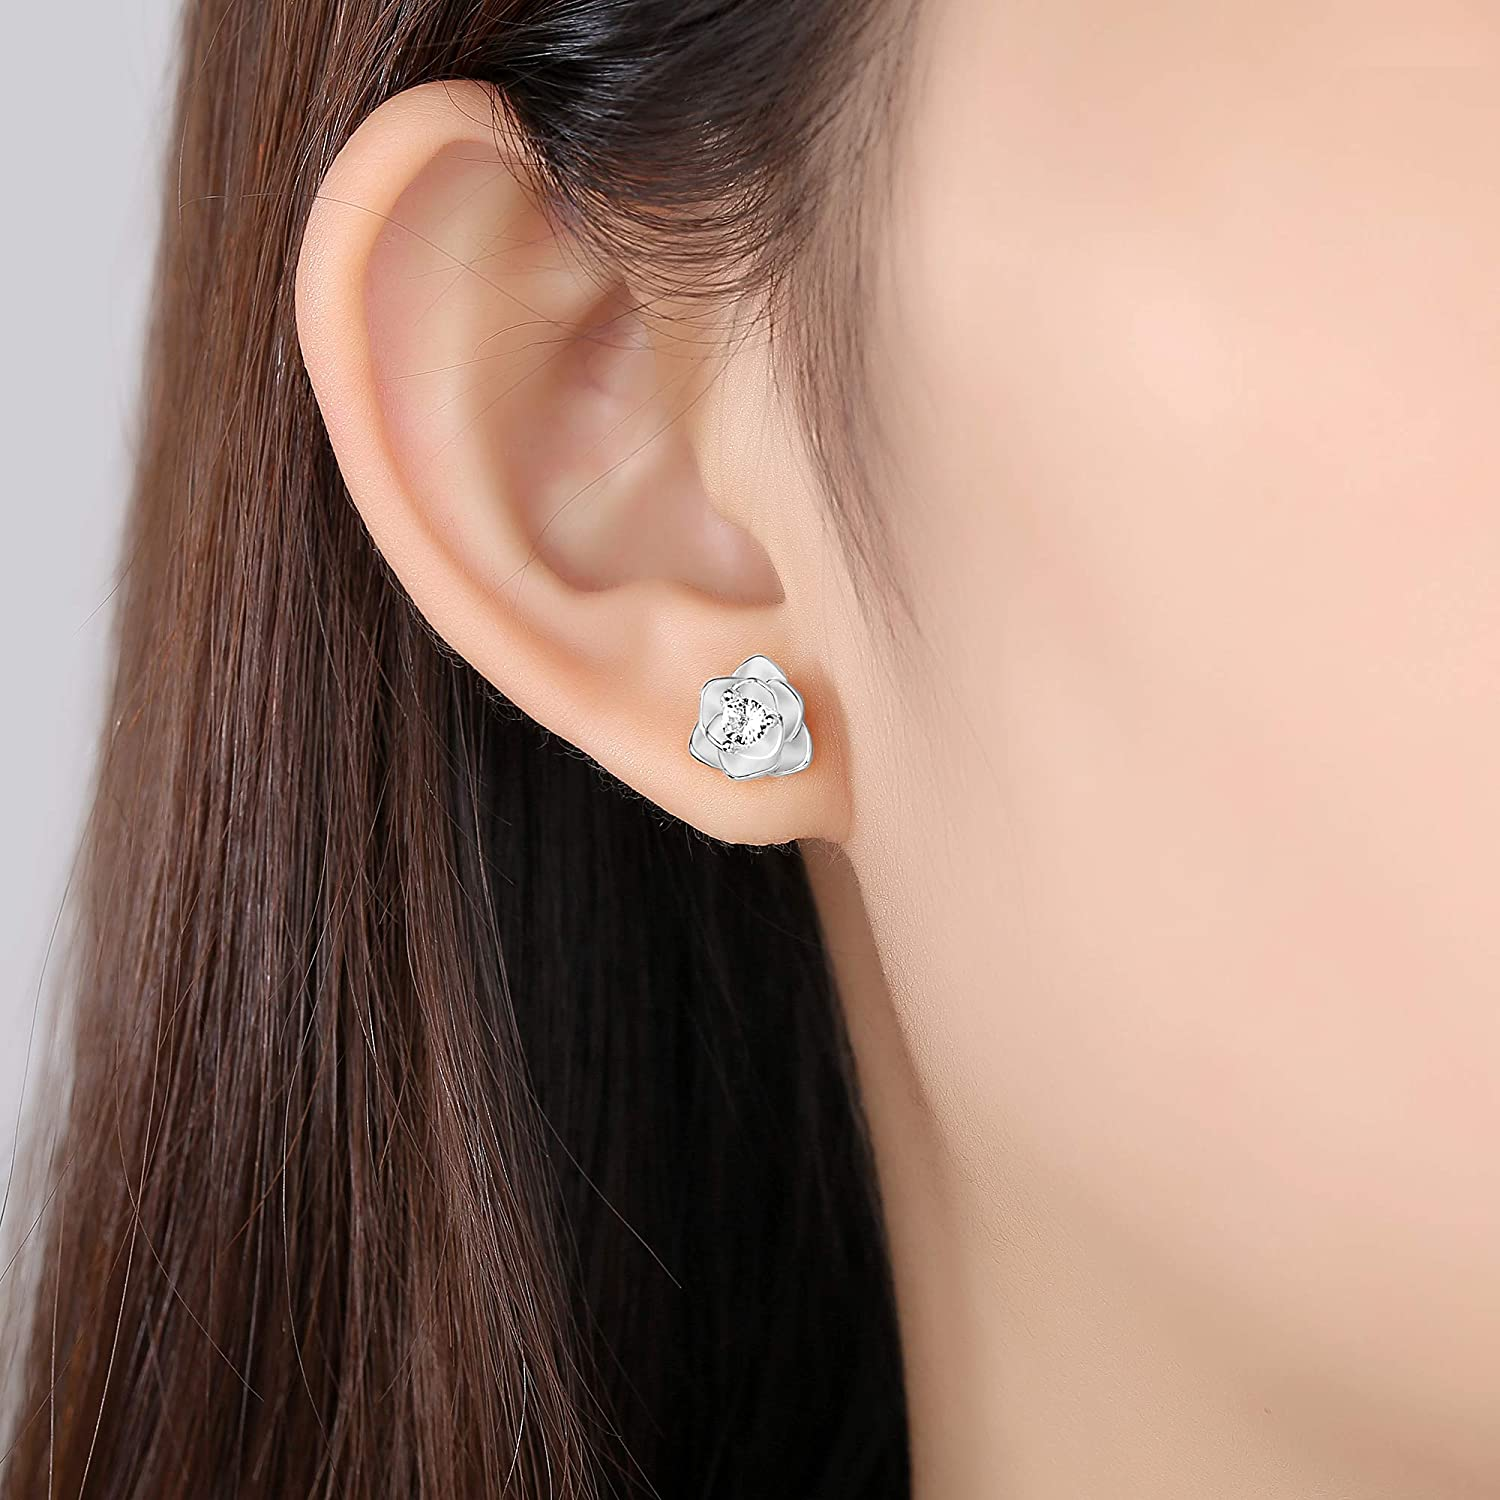 White Gold /& Yellow Gold Plated Rose Flower Ear Studs Hypoallergenic Earrings for Women